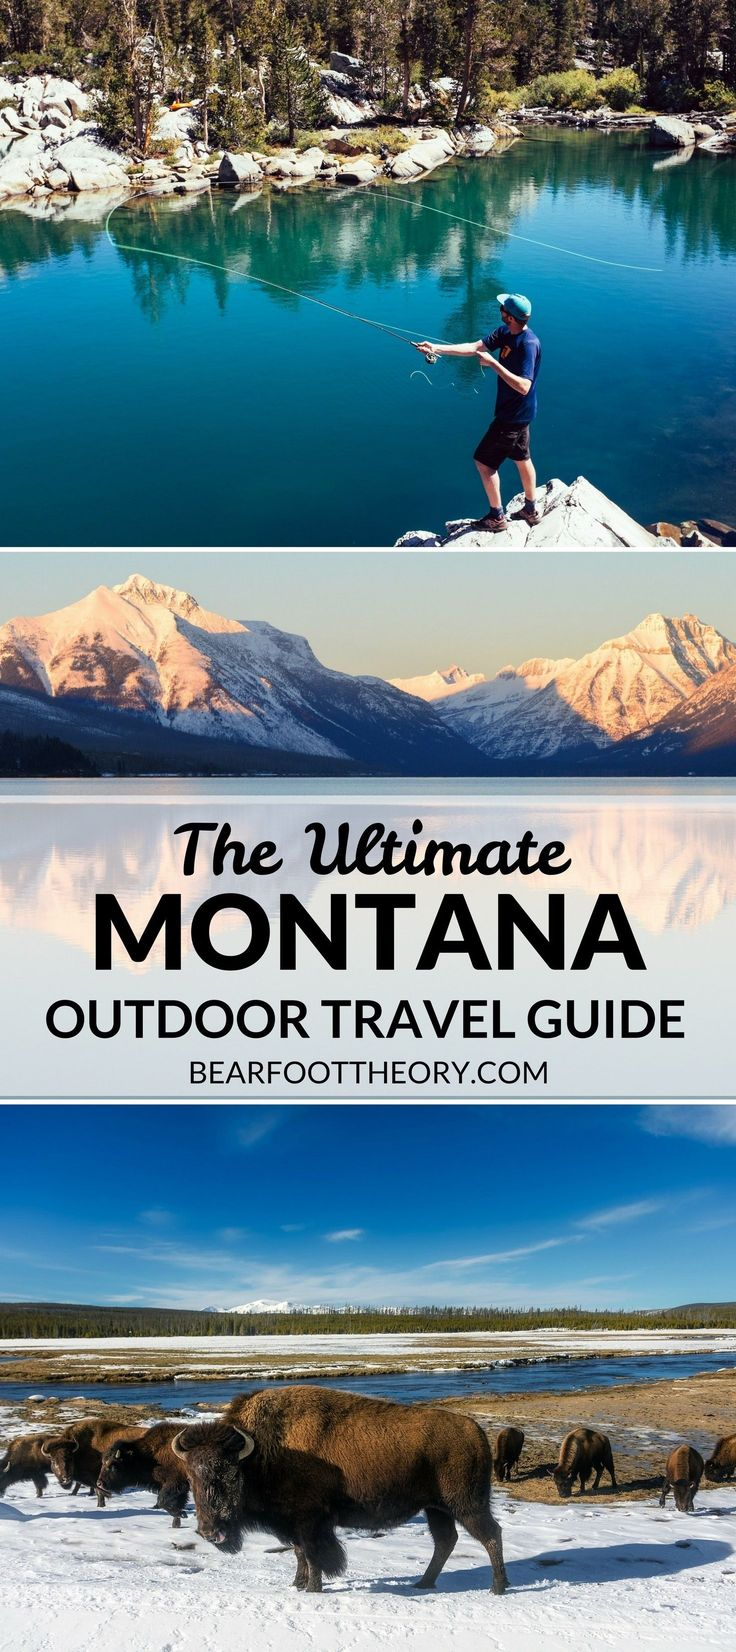 Plan an adventurous trip to Montana with our outdoor travel guide featuring the best outdoor activities, destinations & most popular Montana blog posts #OutdoorDestination